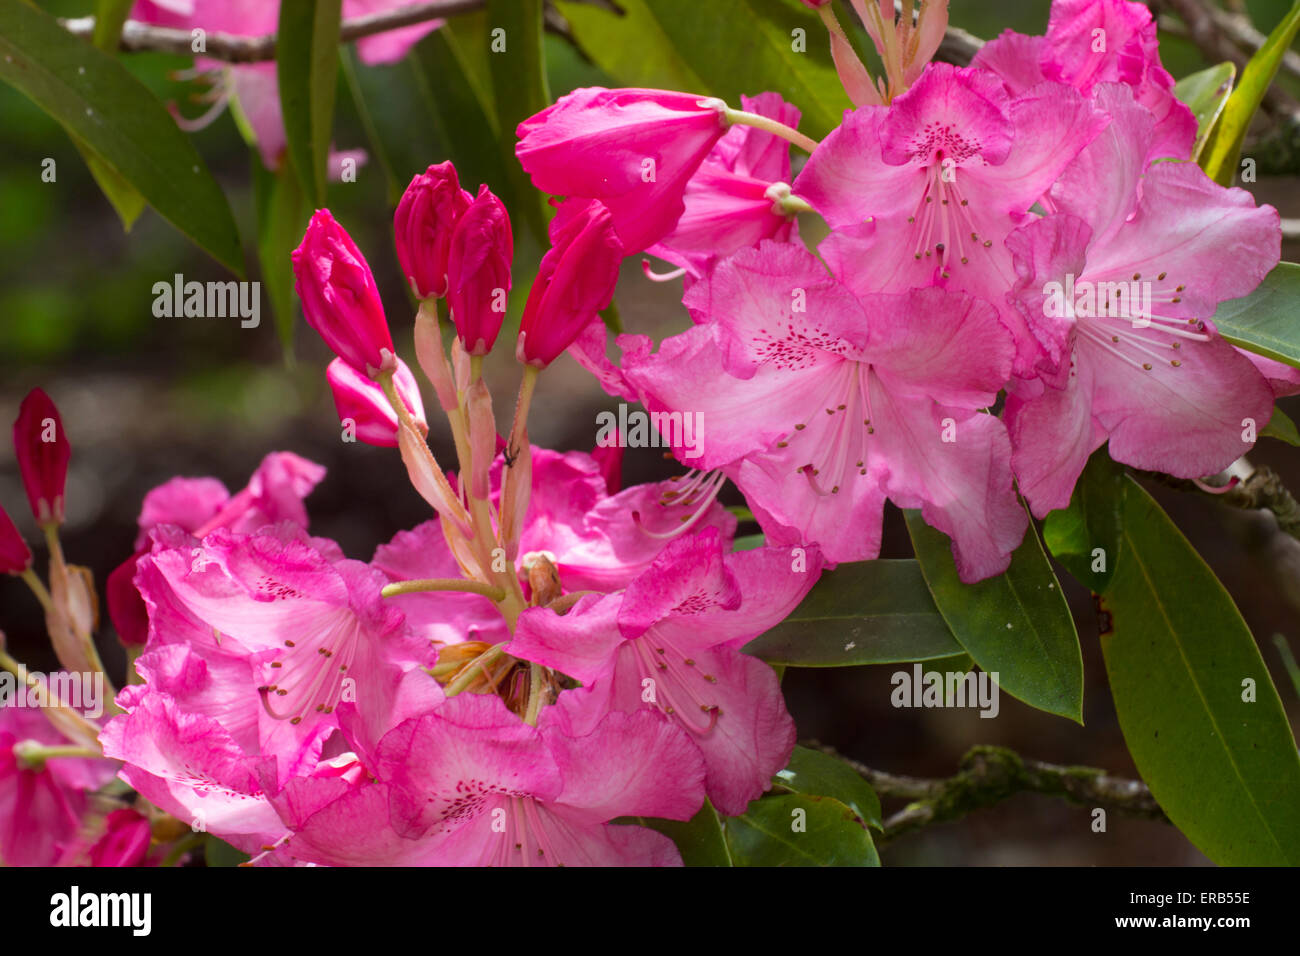 Late spring flowers of the Rhododendron arboreum x griffithianum hybrid 'Beauty of Tremough' - Stock Image